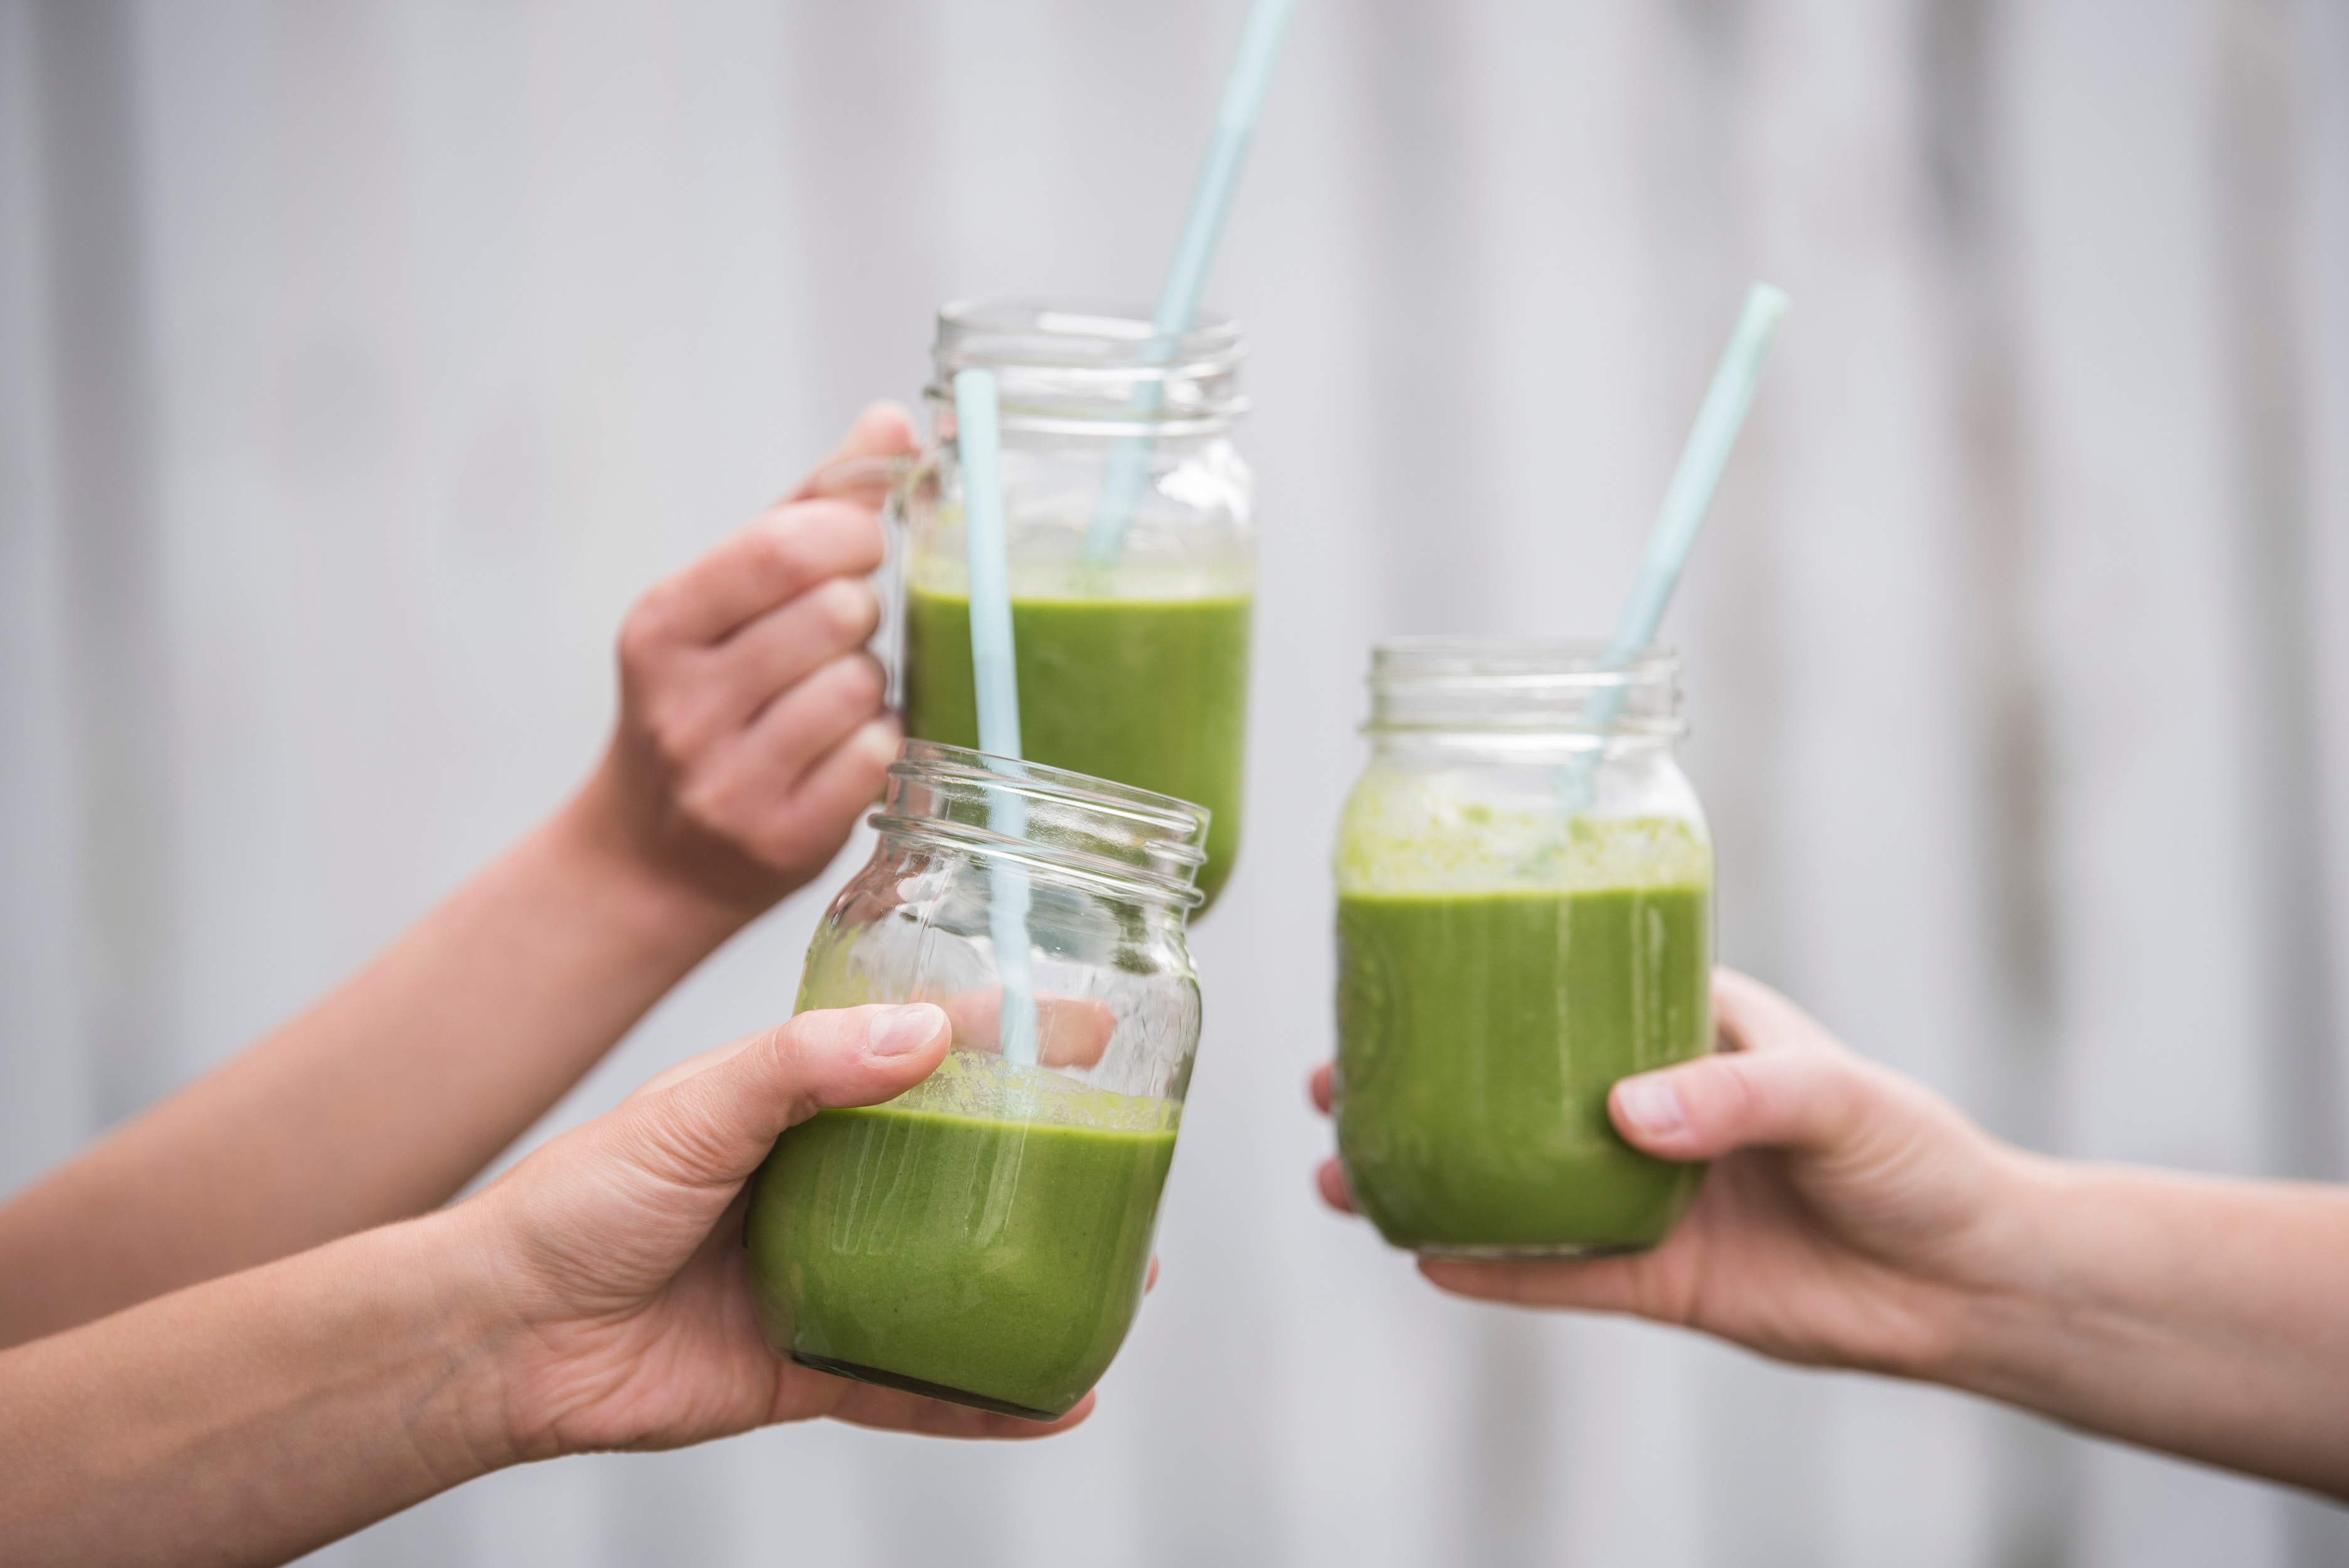 hands cheers-ing with green smoothie